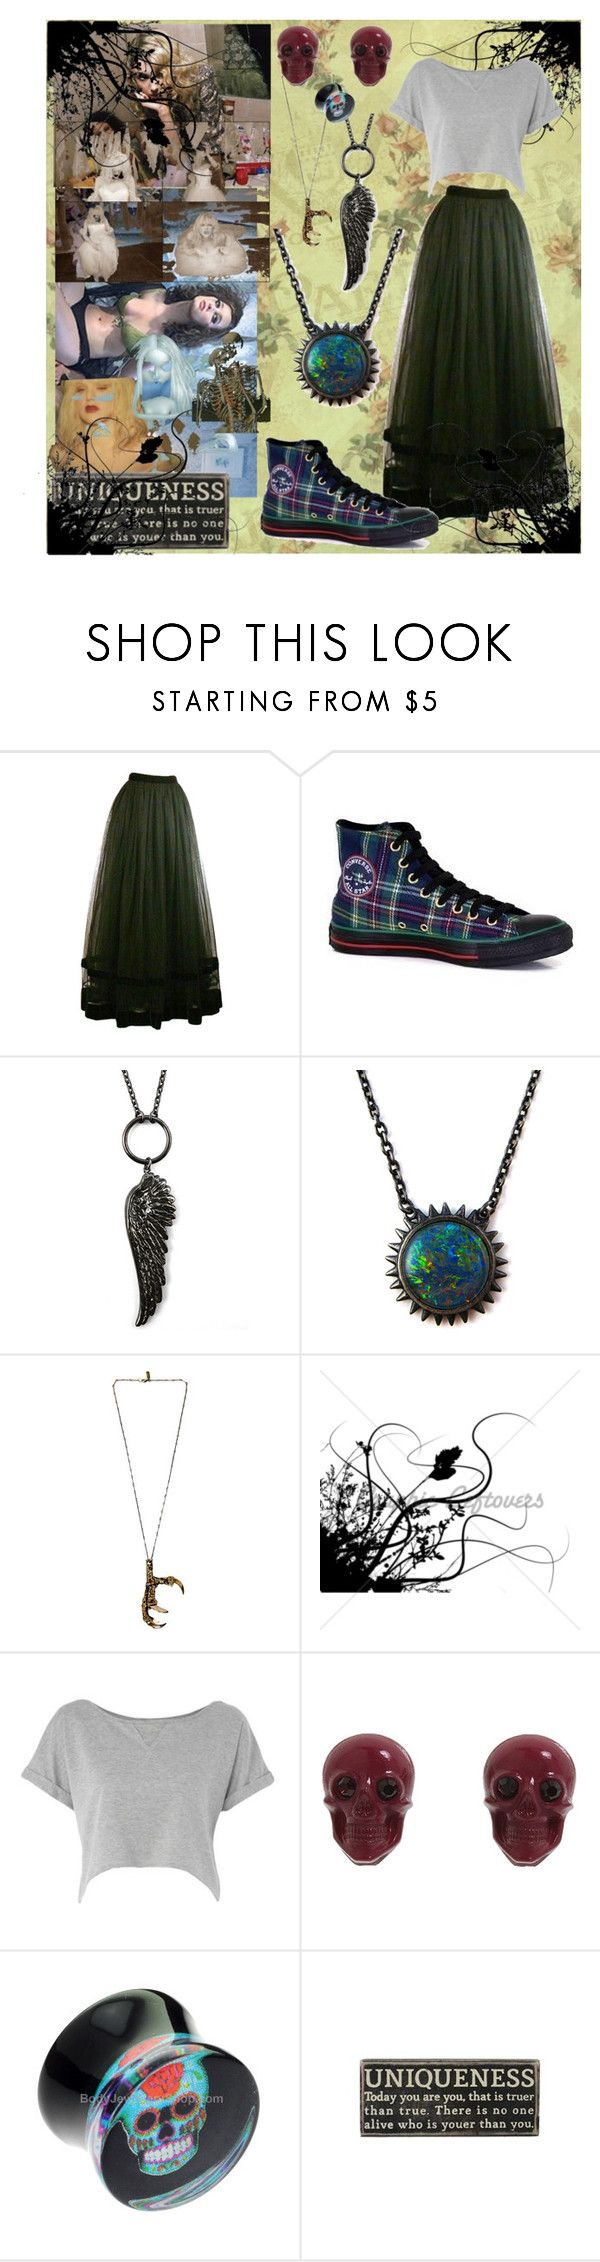 """Ur Just Different"" by ginarayworks ❤ liked on Polyvore featuring Kay Unger New York, Converse, Alex and Chloe, Pamela Love, H! by Henry Holland and Tarina Tarantino"